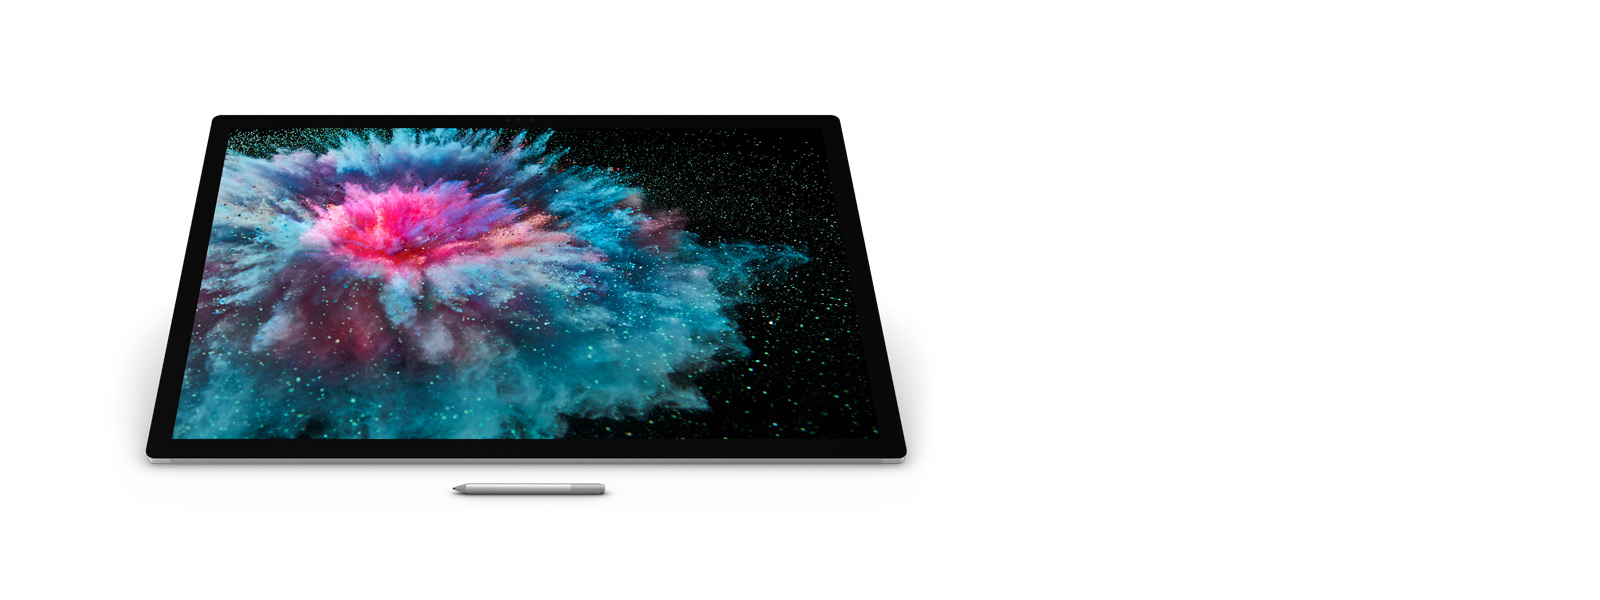 Surface Studio 2 with Surface Pen